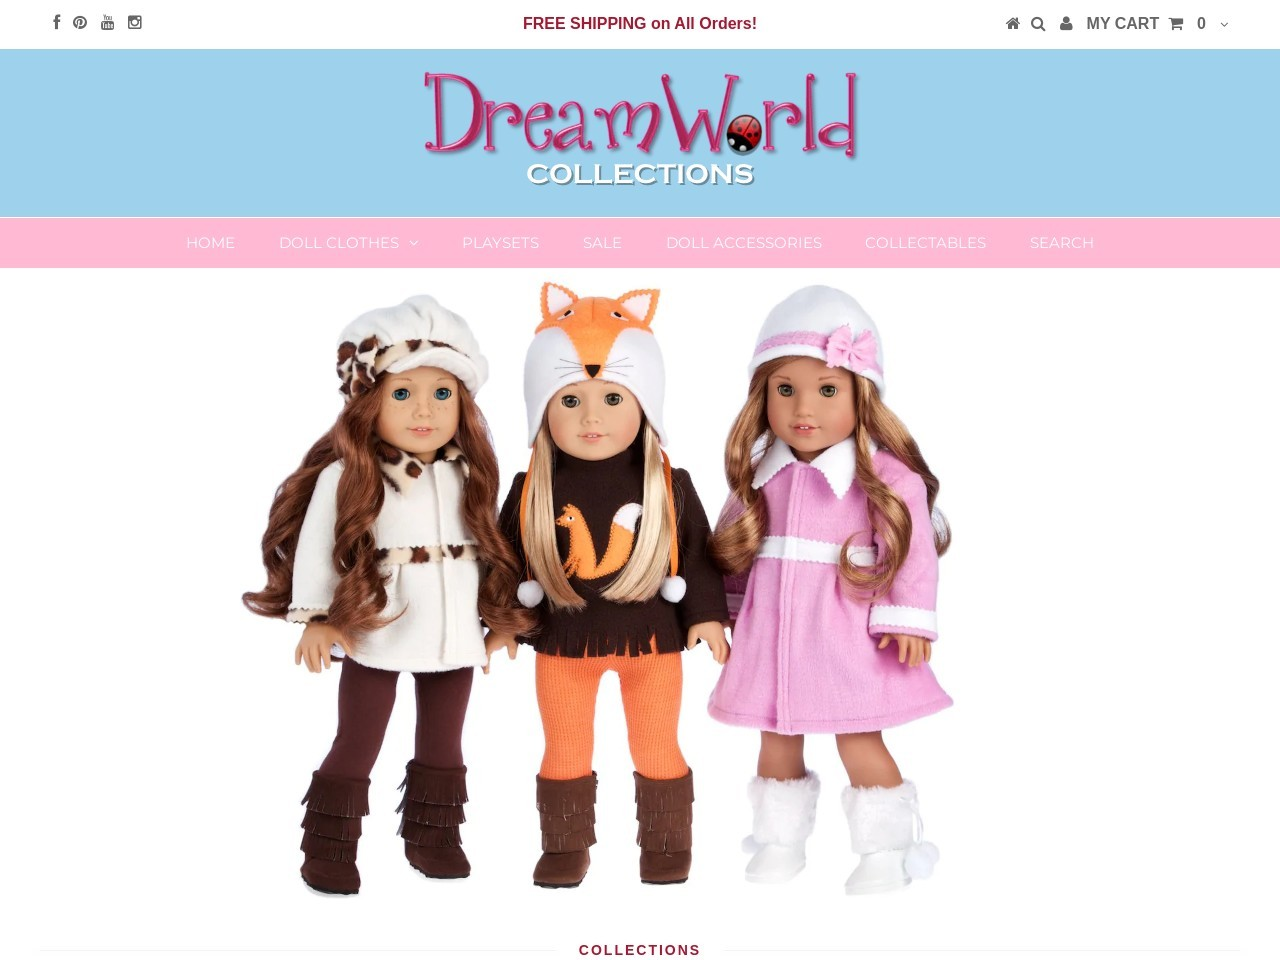 dreamworldcollections.com